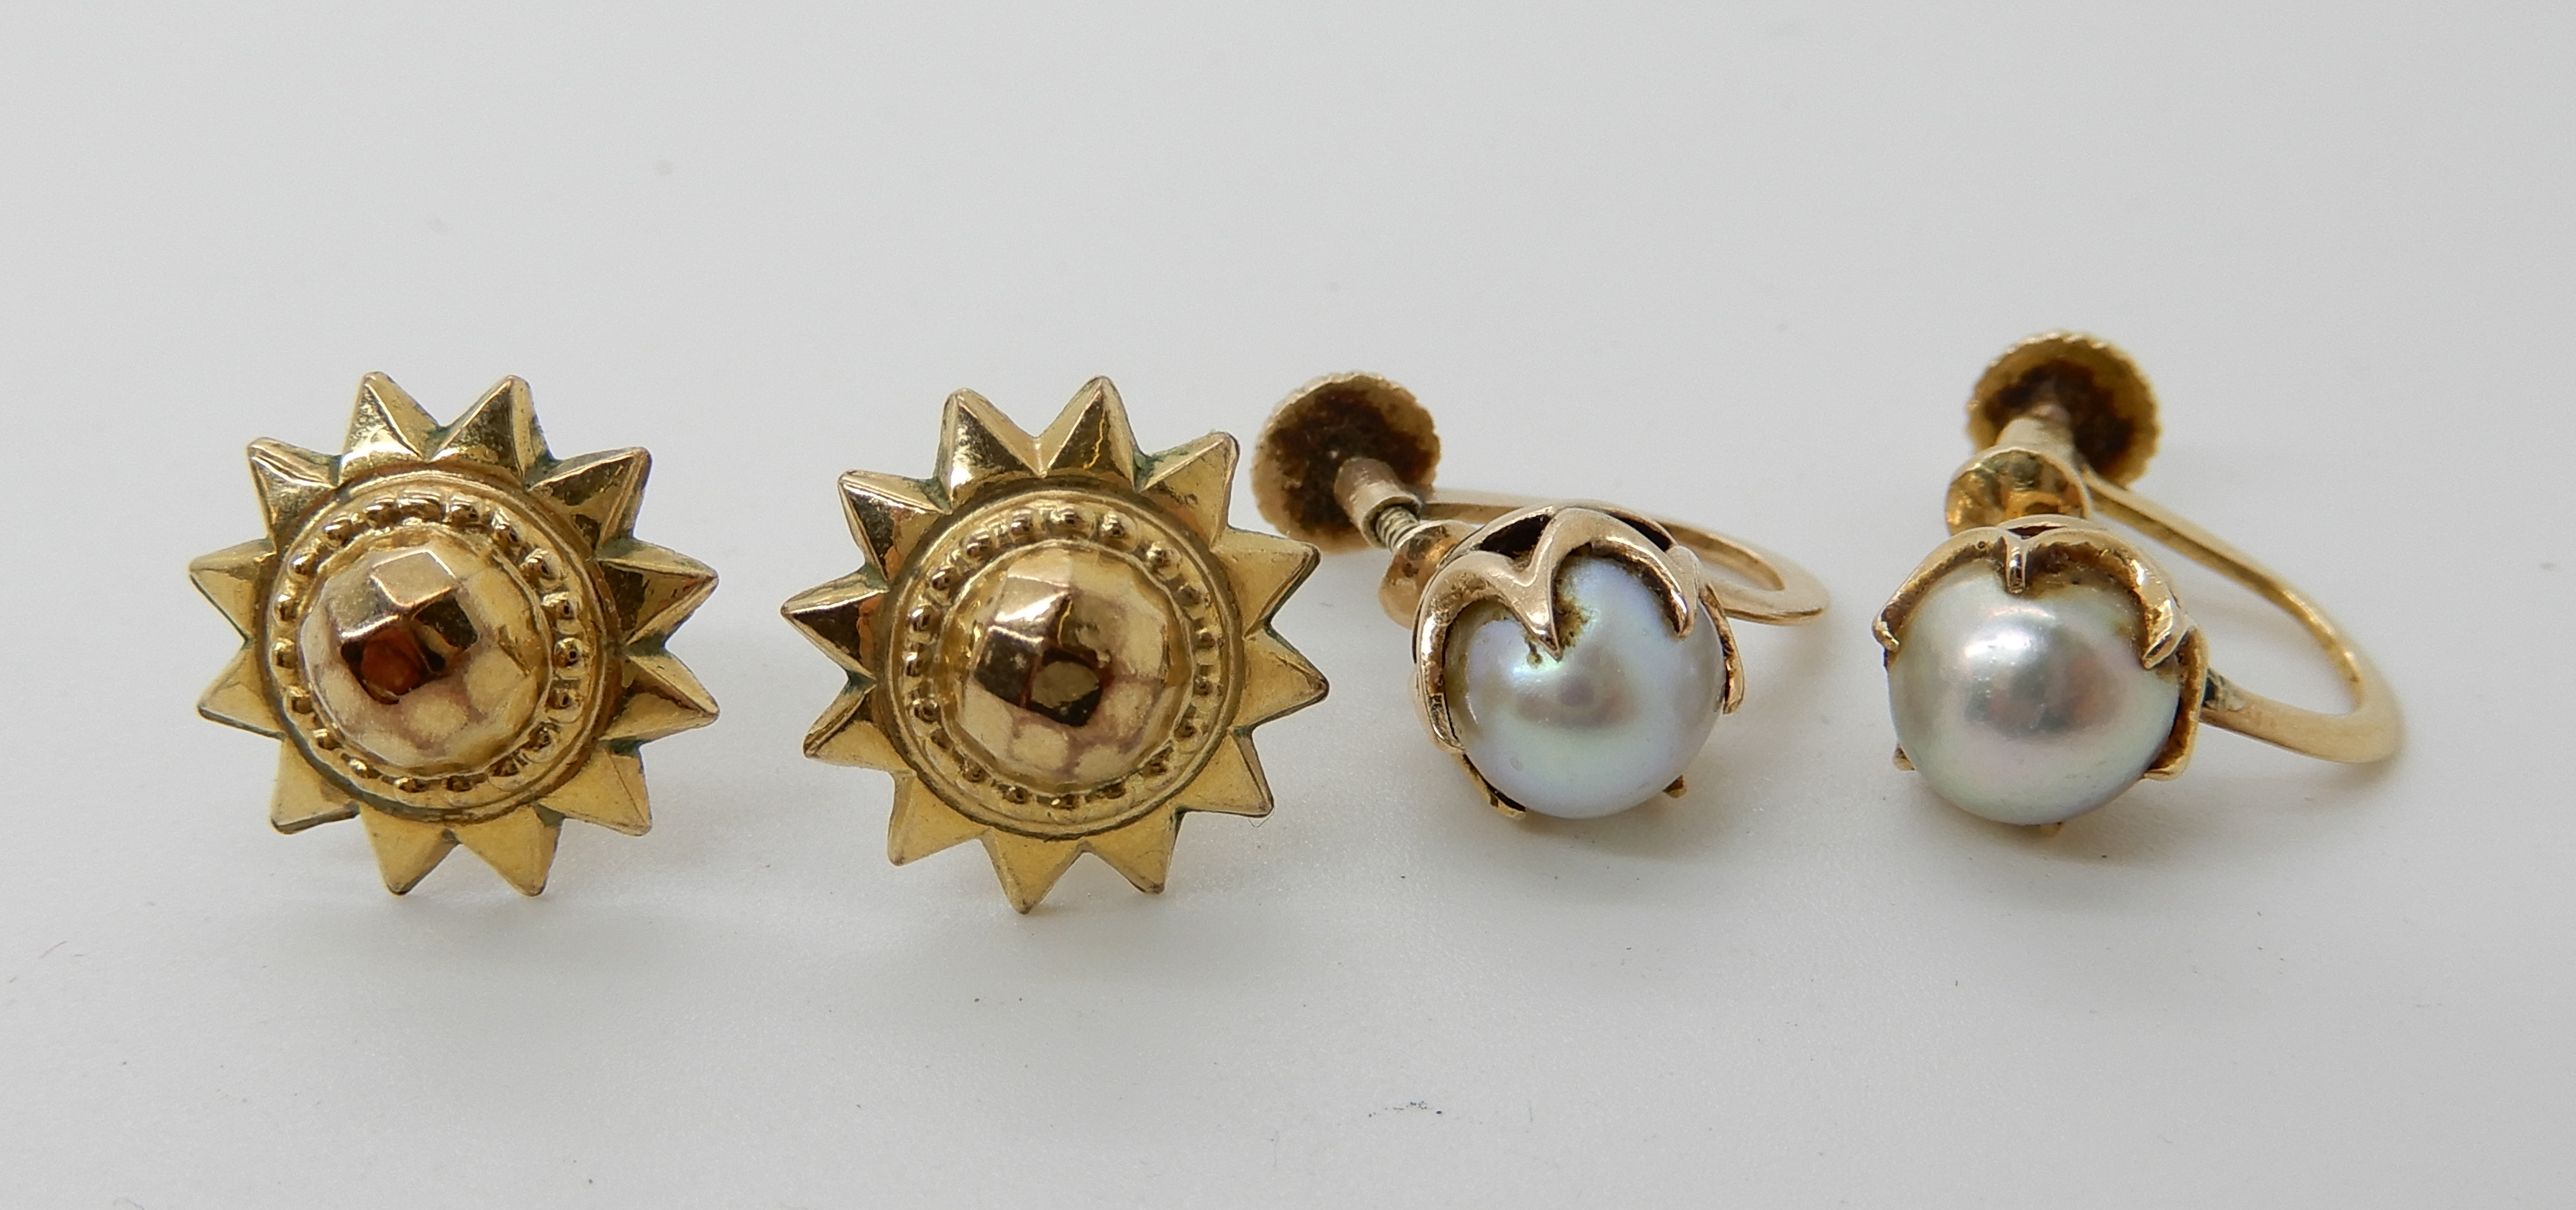 Lot 52 - A pair of 18ct mounted pearl earrings with screw backs and a pair of 9ct gold star earrings weight